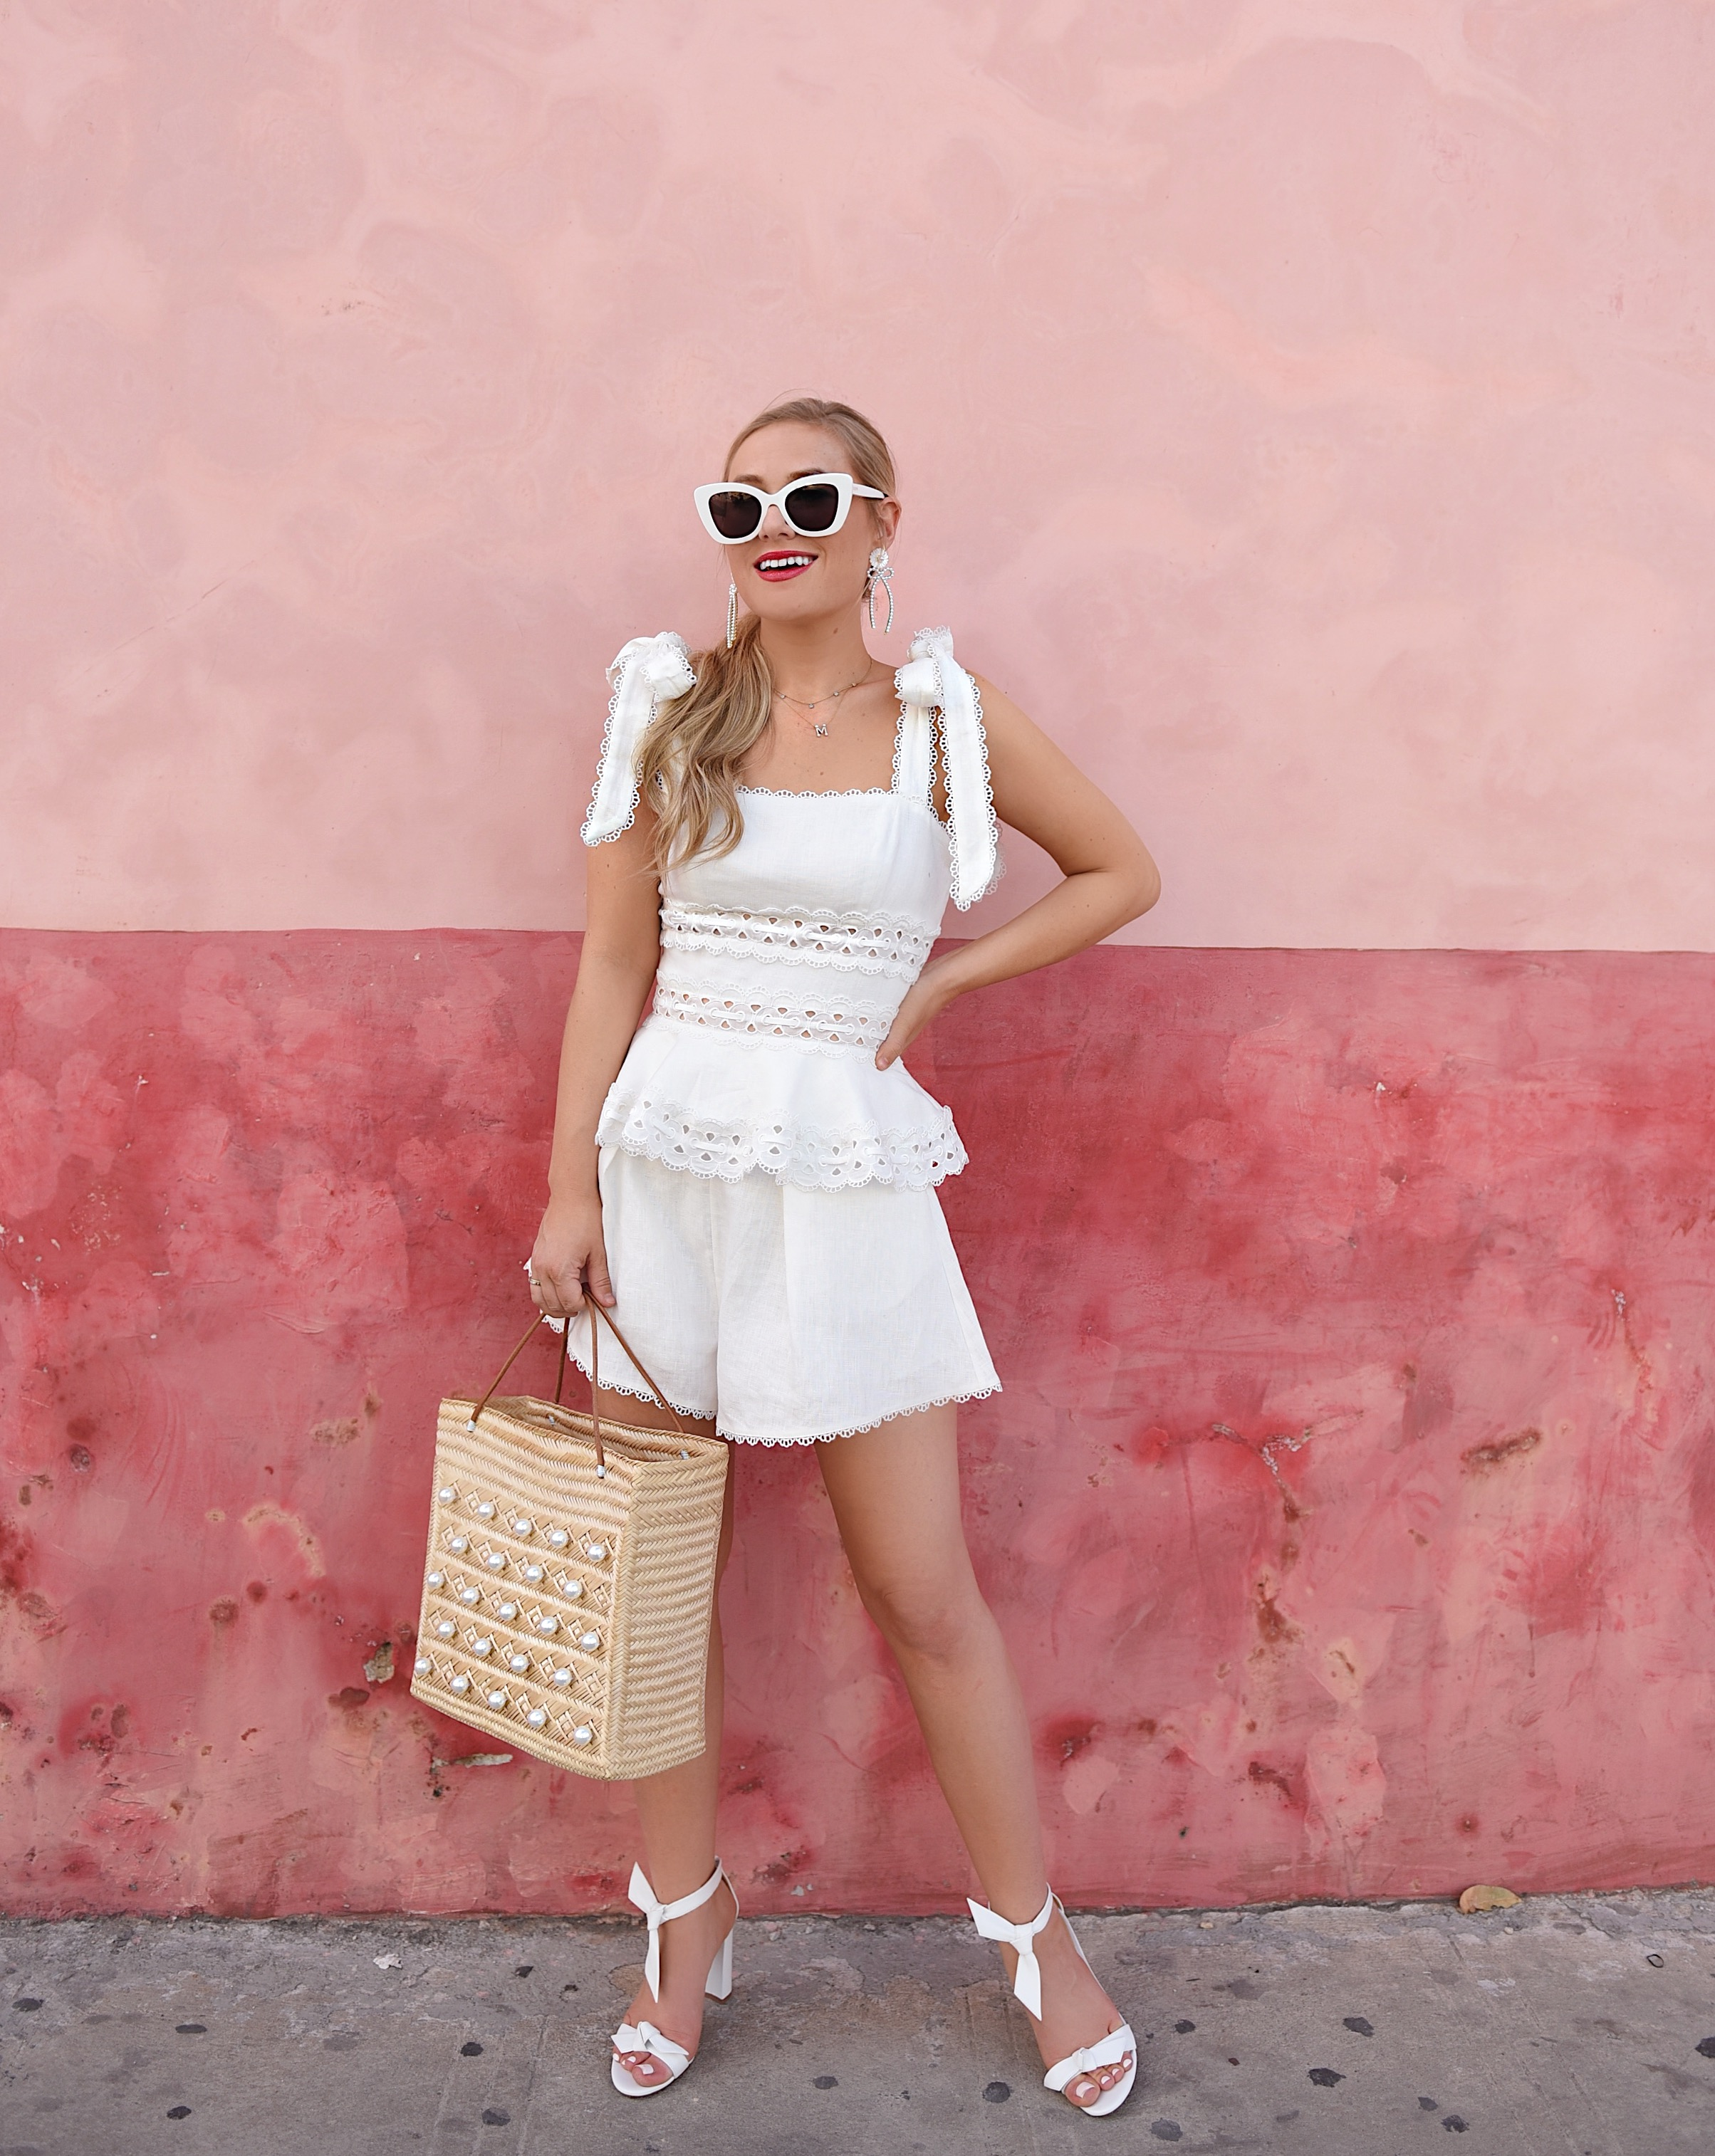 Lo-Murphy-Zimmermann-Kirra-Tie-Shoulder-Cropped-Top-Lace-Trim-Short-White-Matching-set-travel-style-dallas-blogger-white-lace-white-dress